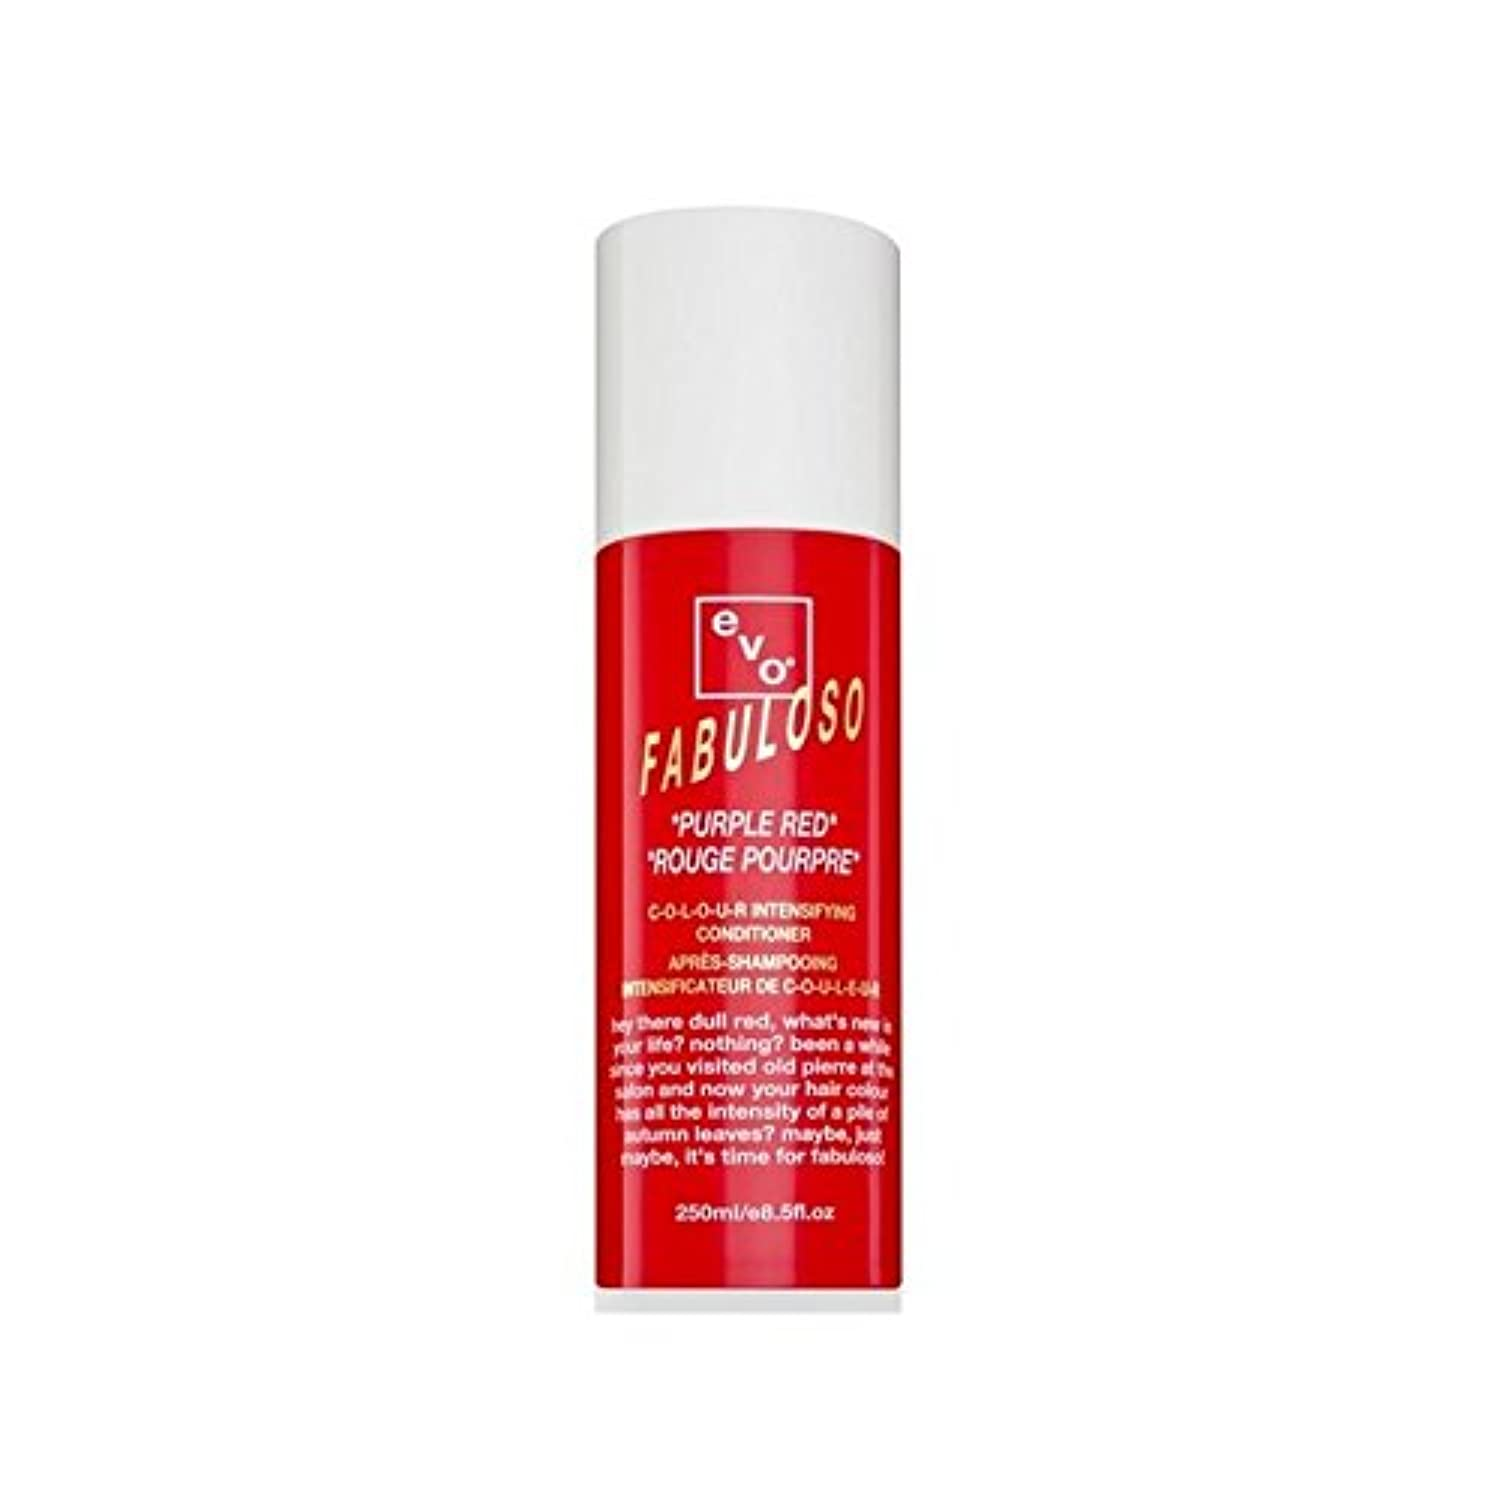 コンディショナー赤紫色(250ミリリットル)を強化 色 x2 - Evo Fabuloso Colour Intensifying Conditioner Purple Red (250ml) (Pack of 2) [...